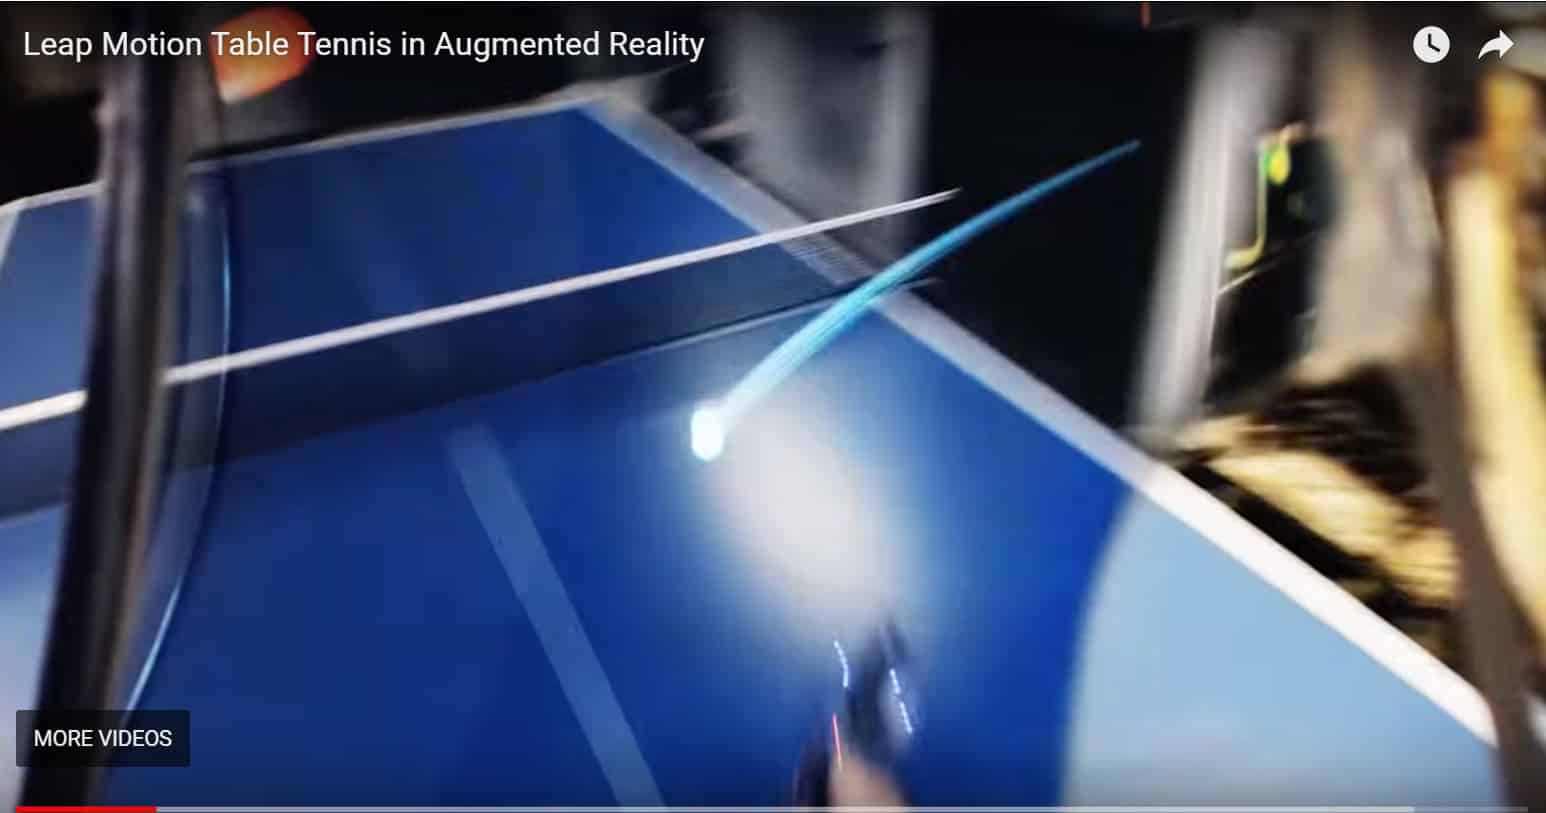 Augmented Reality Table Tennis